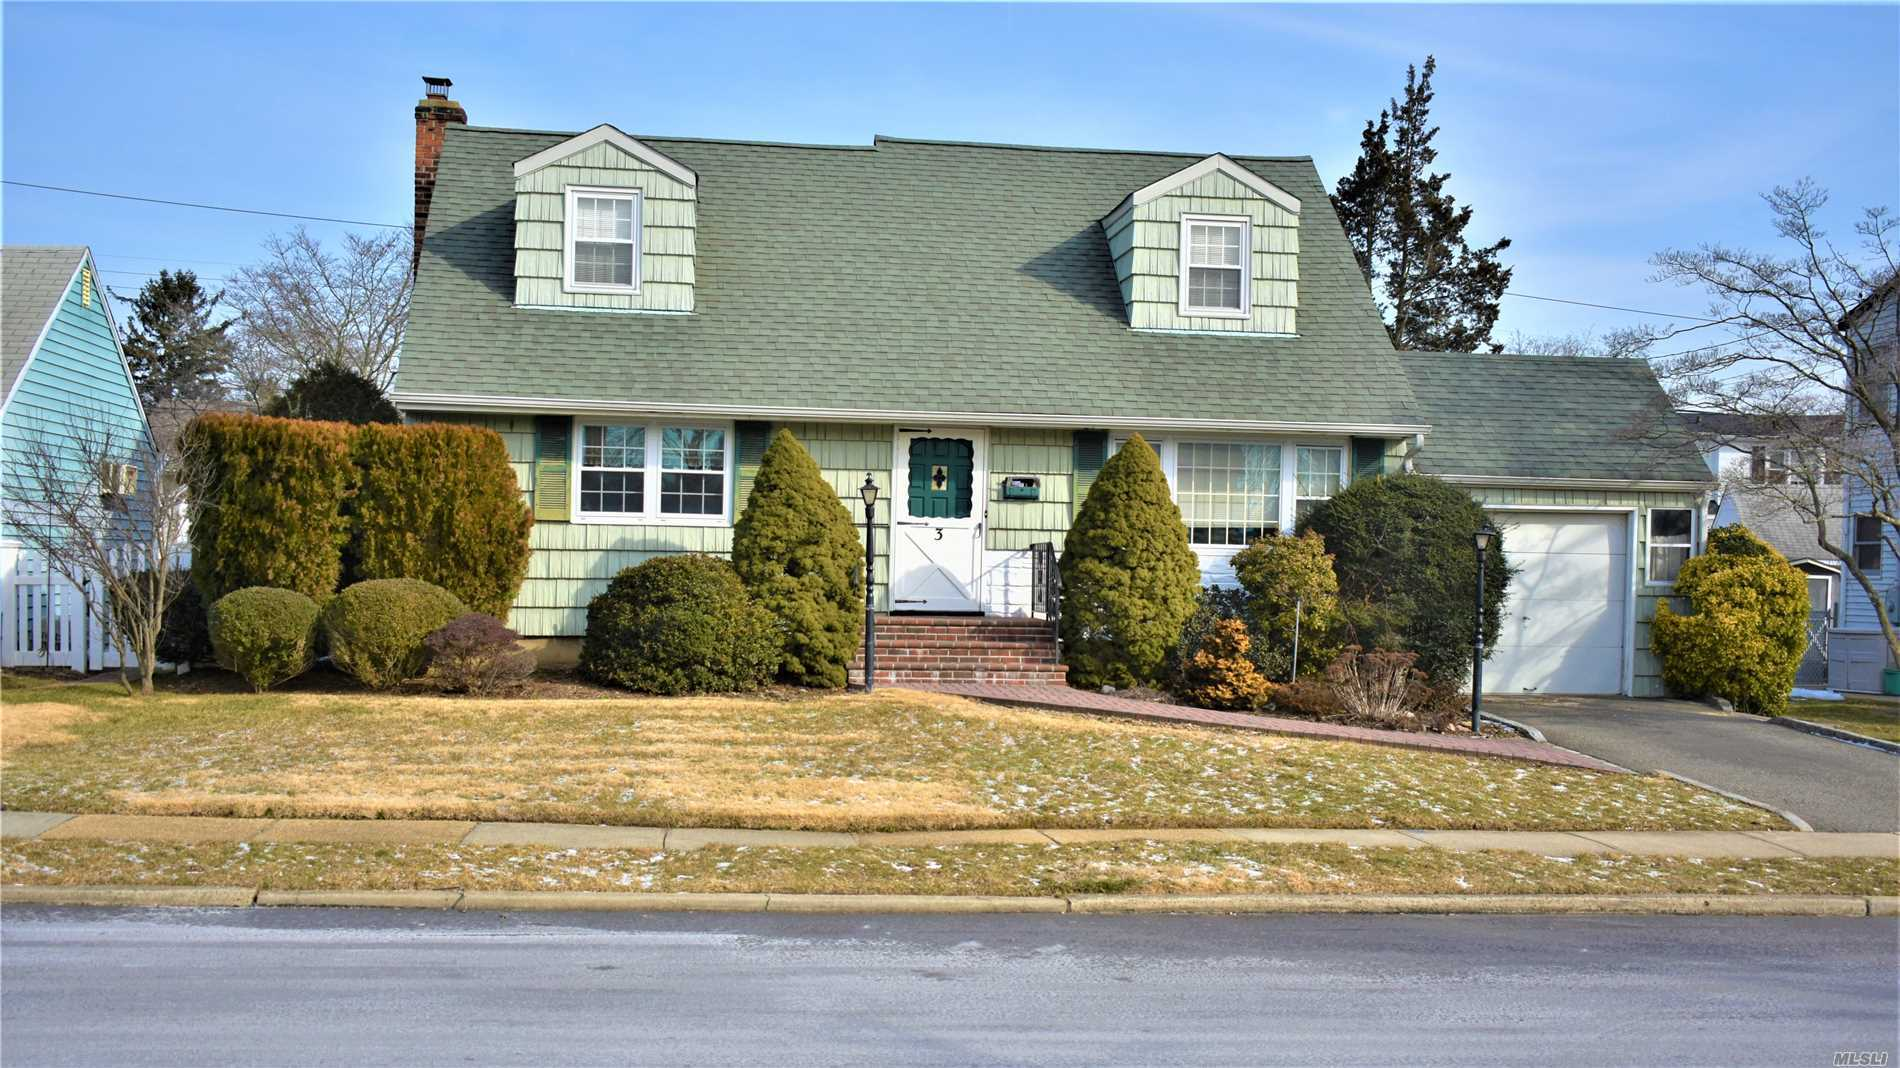 Location! Location! Location! Charming & Cozy 4 Bedroom, 1 Bath Cape With Full Half Finished Basement, Hardwood Floors Throughout, Bonus Room, 5 Zone Sprinkler System, Tons Of Potential. Come Make This Home Yours, Wont Last !!